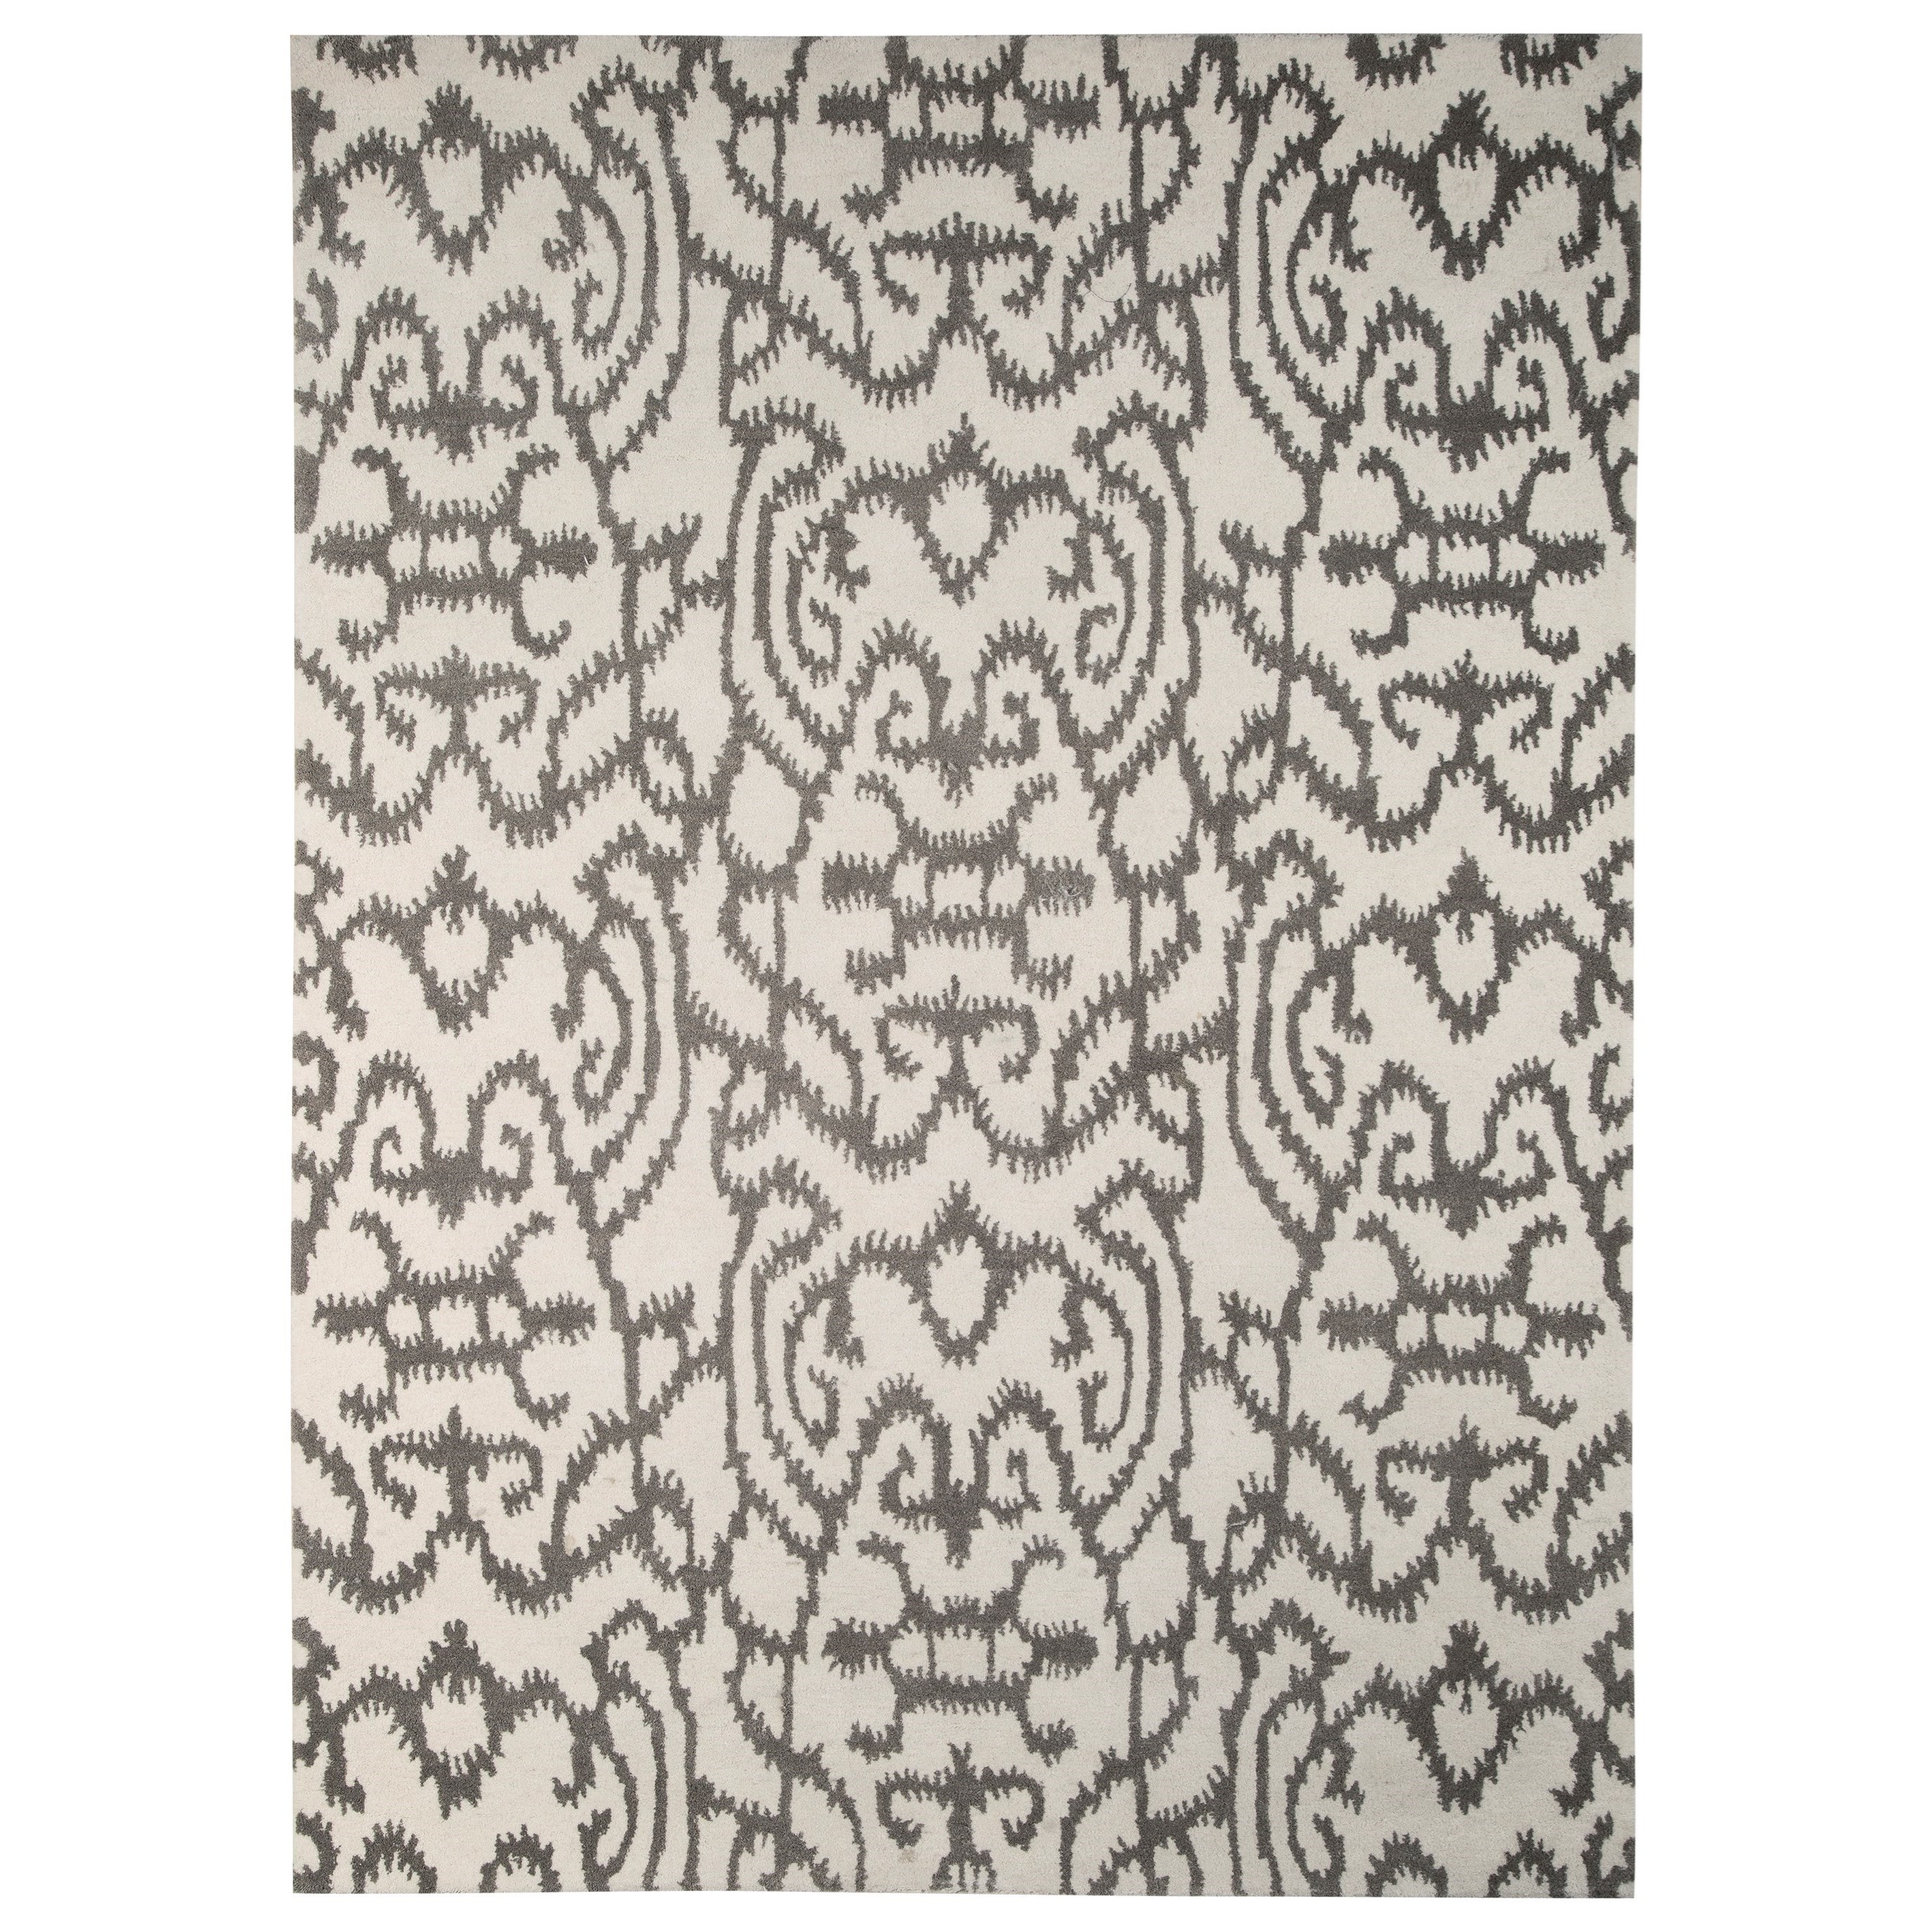 Signature Design by Ashley Transitional Area Rugs Benbrook Gray/Ivory Large Rug - Item Number: R400301